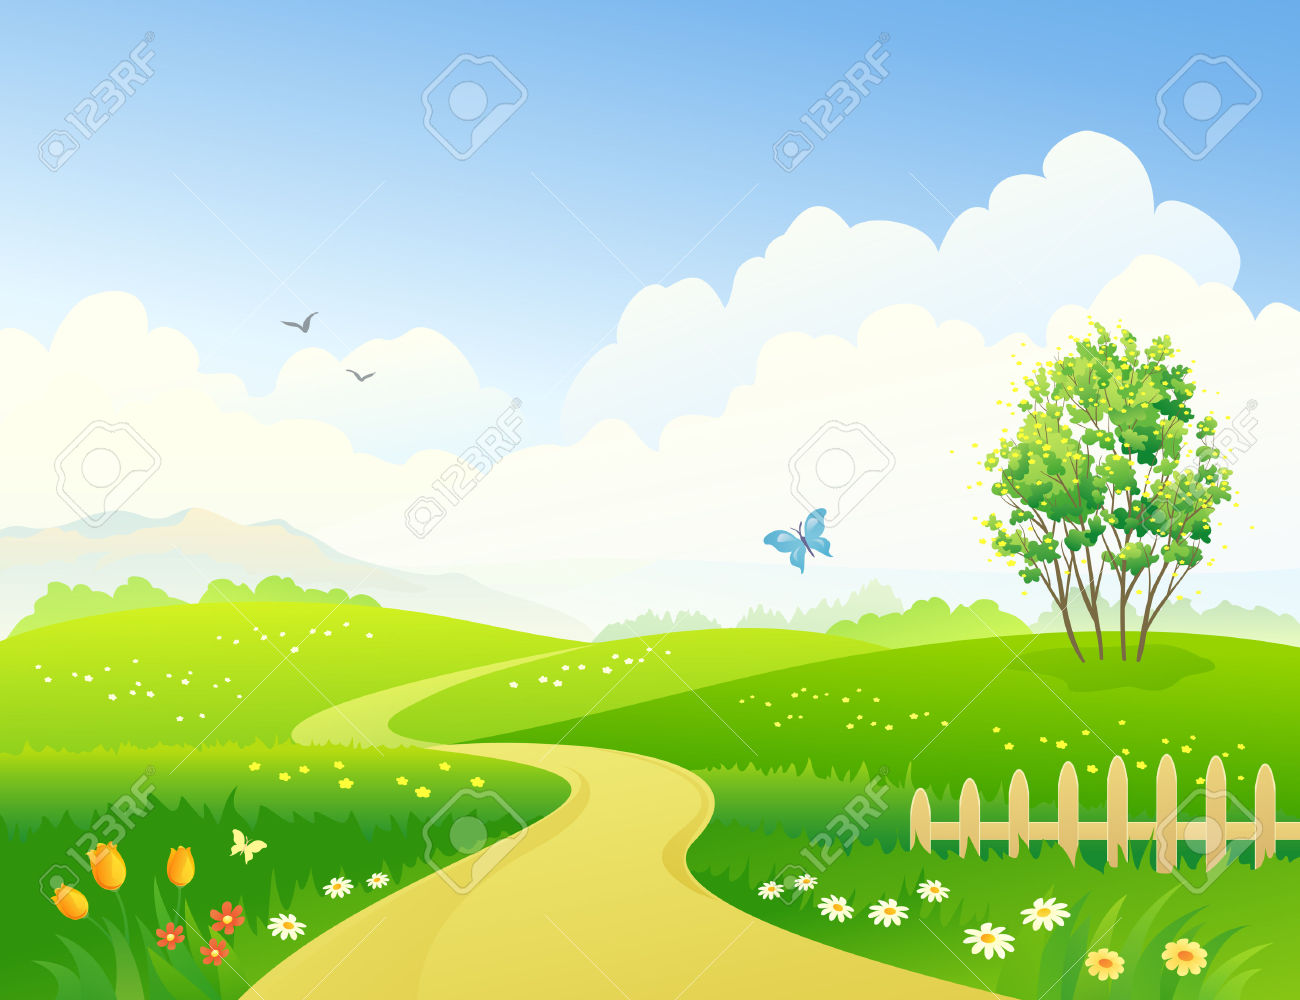 Landscaped Garden Clipart